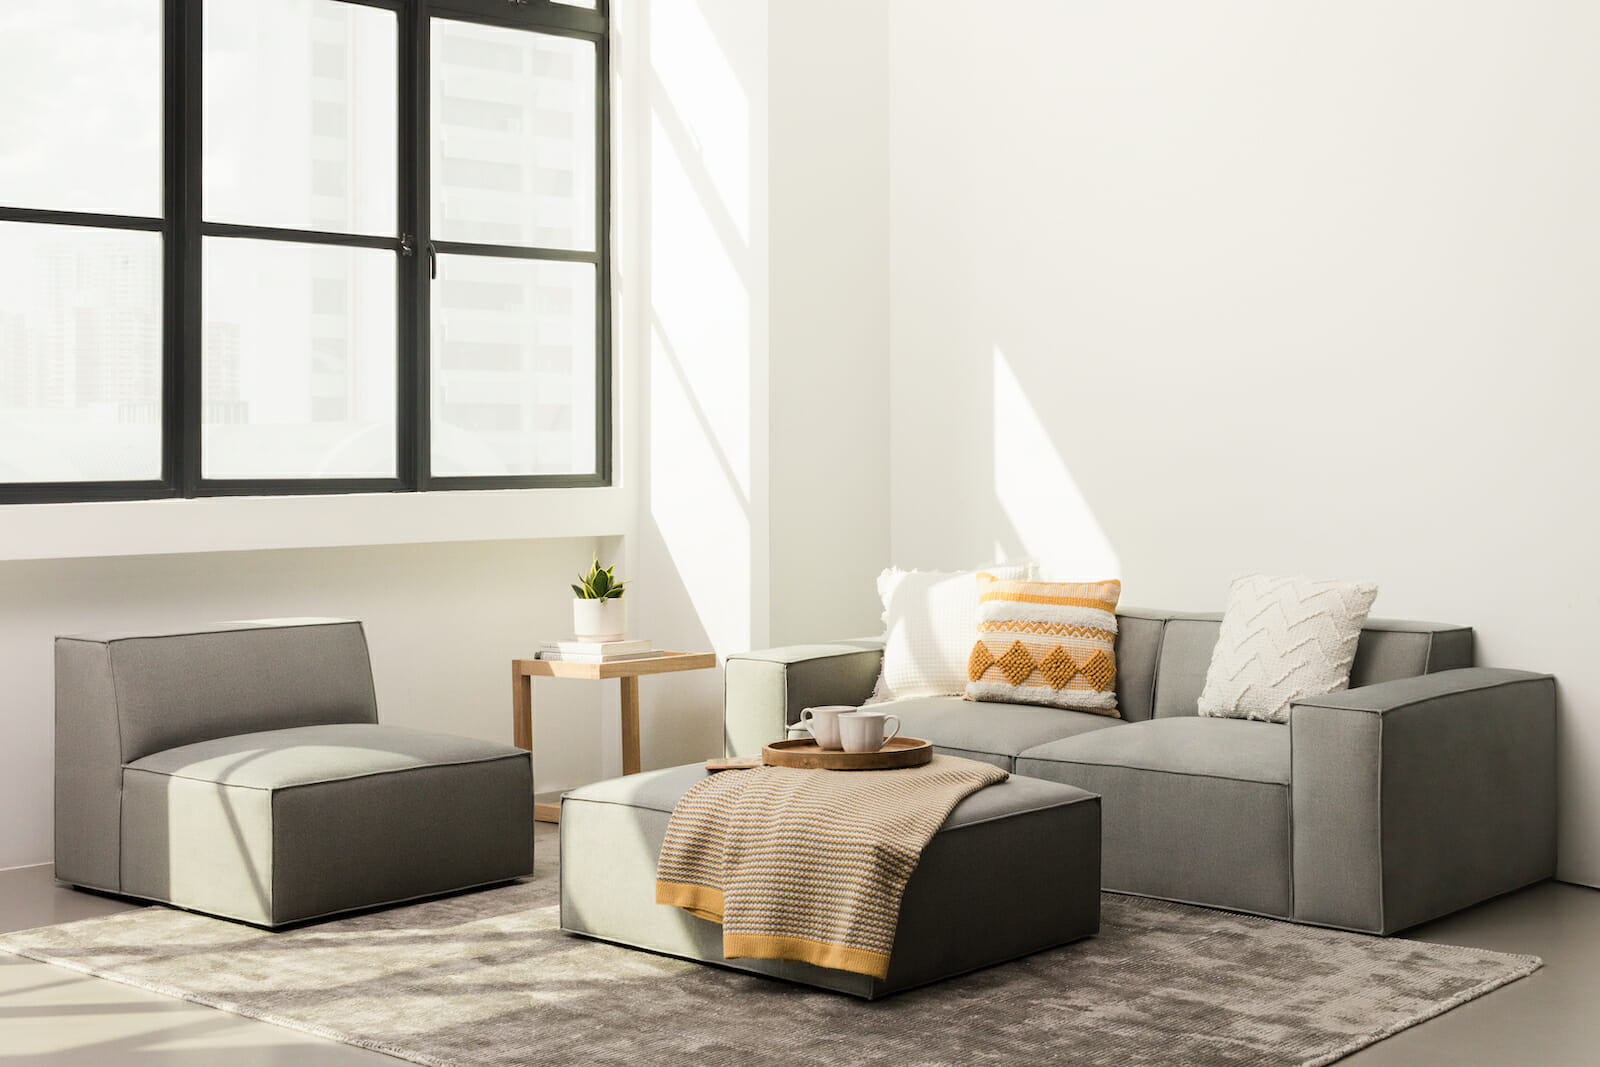 The pacific modular sectional - grey